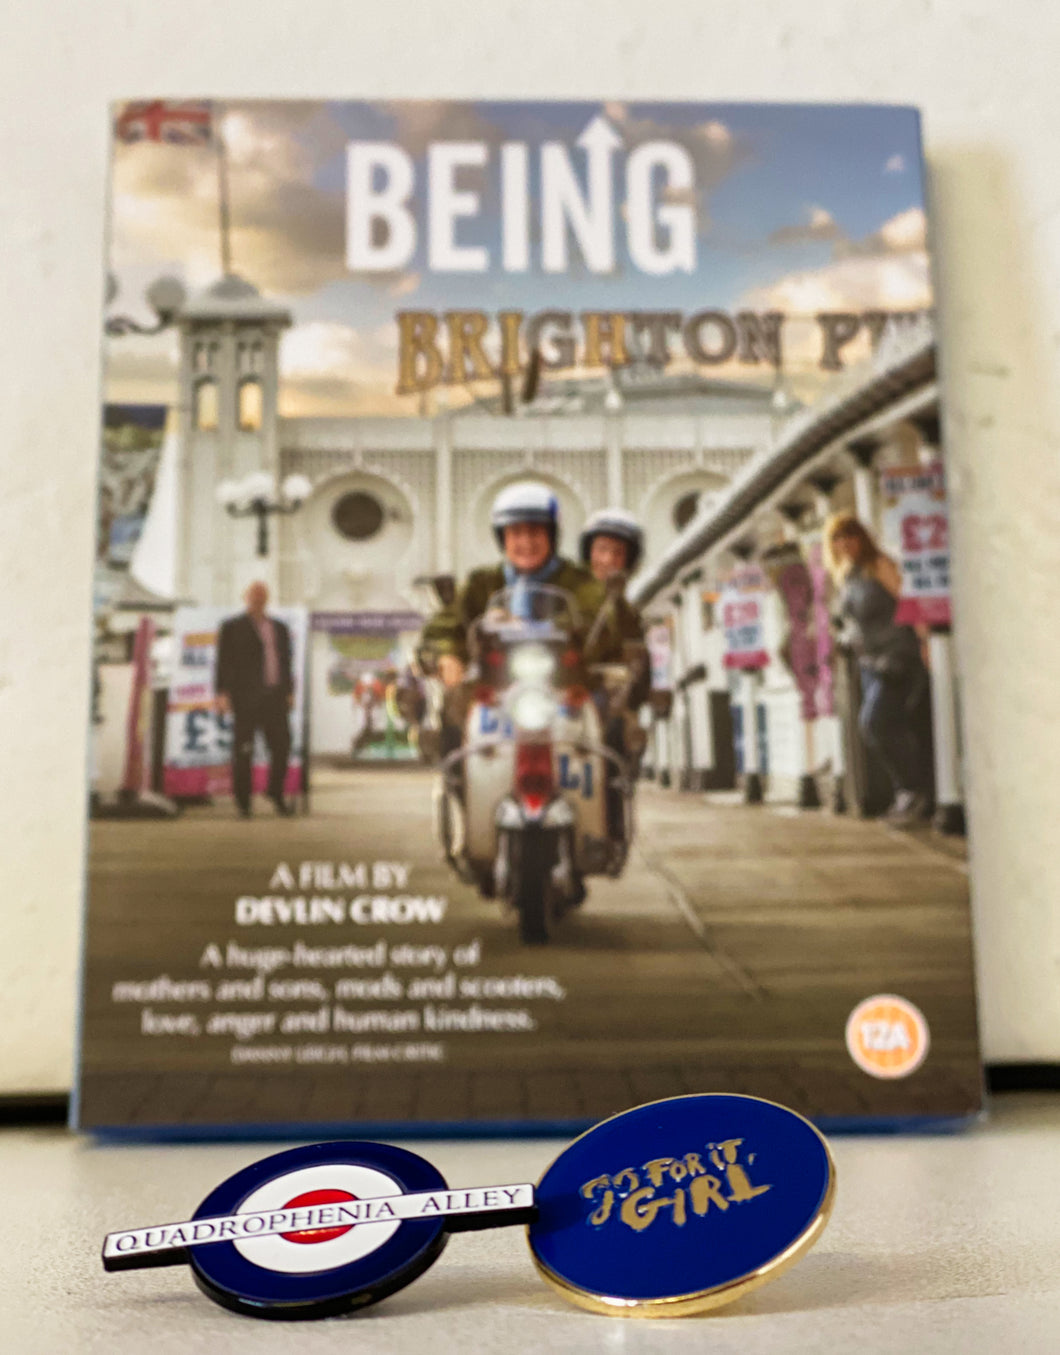 Go For It Girl + Quadrophenia Alley Pin Badge